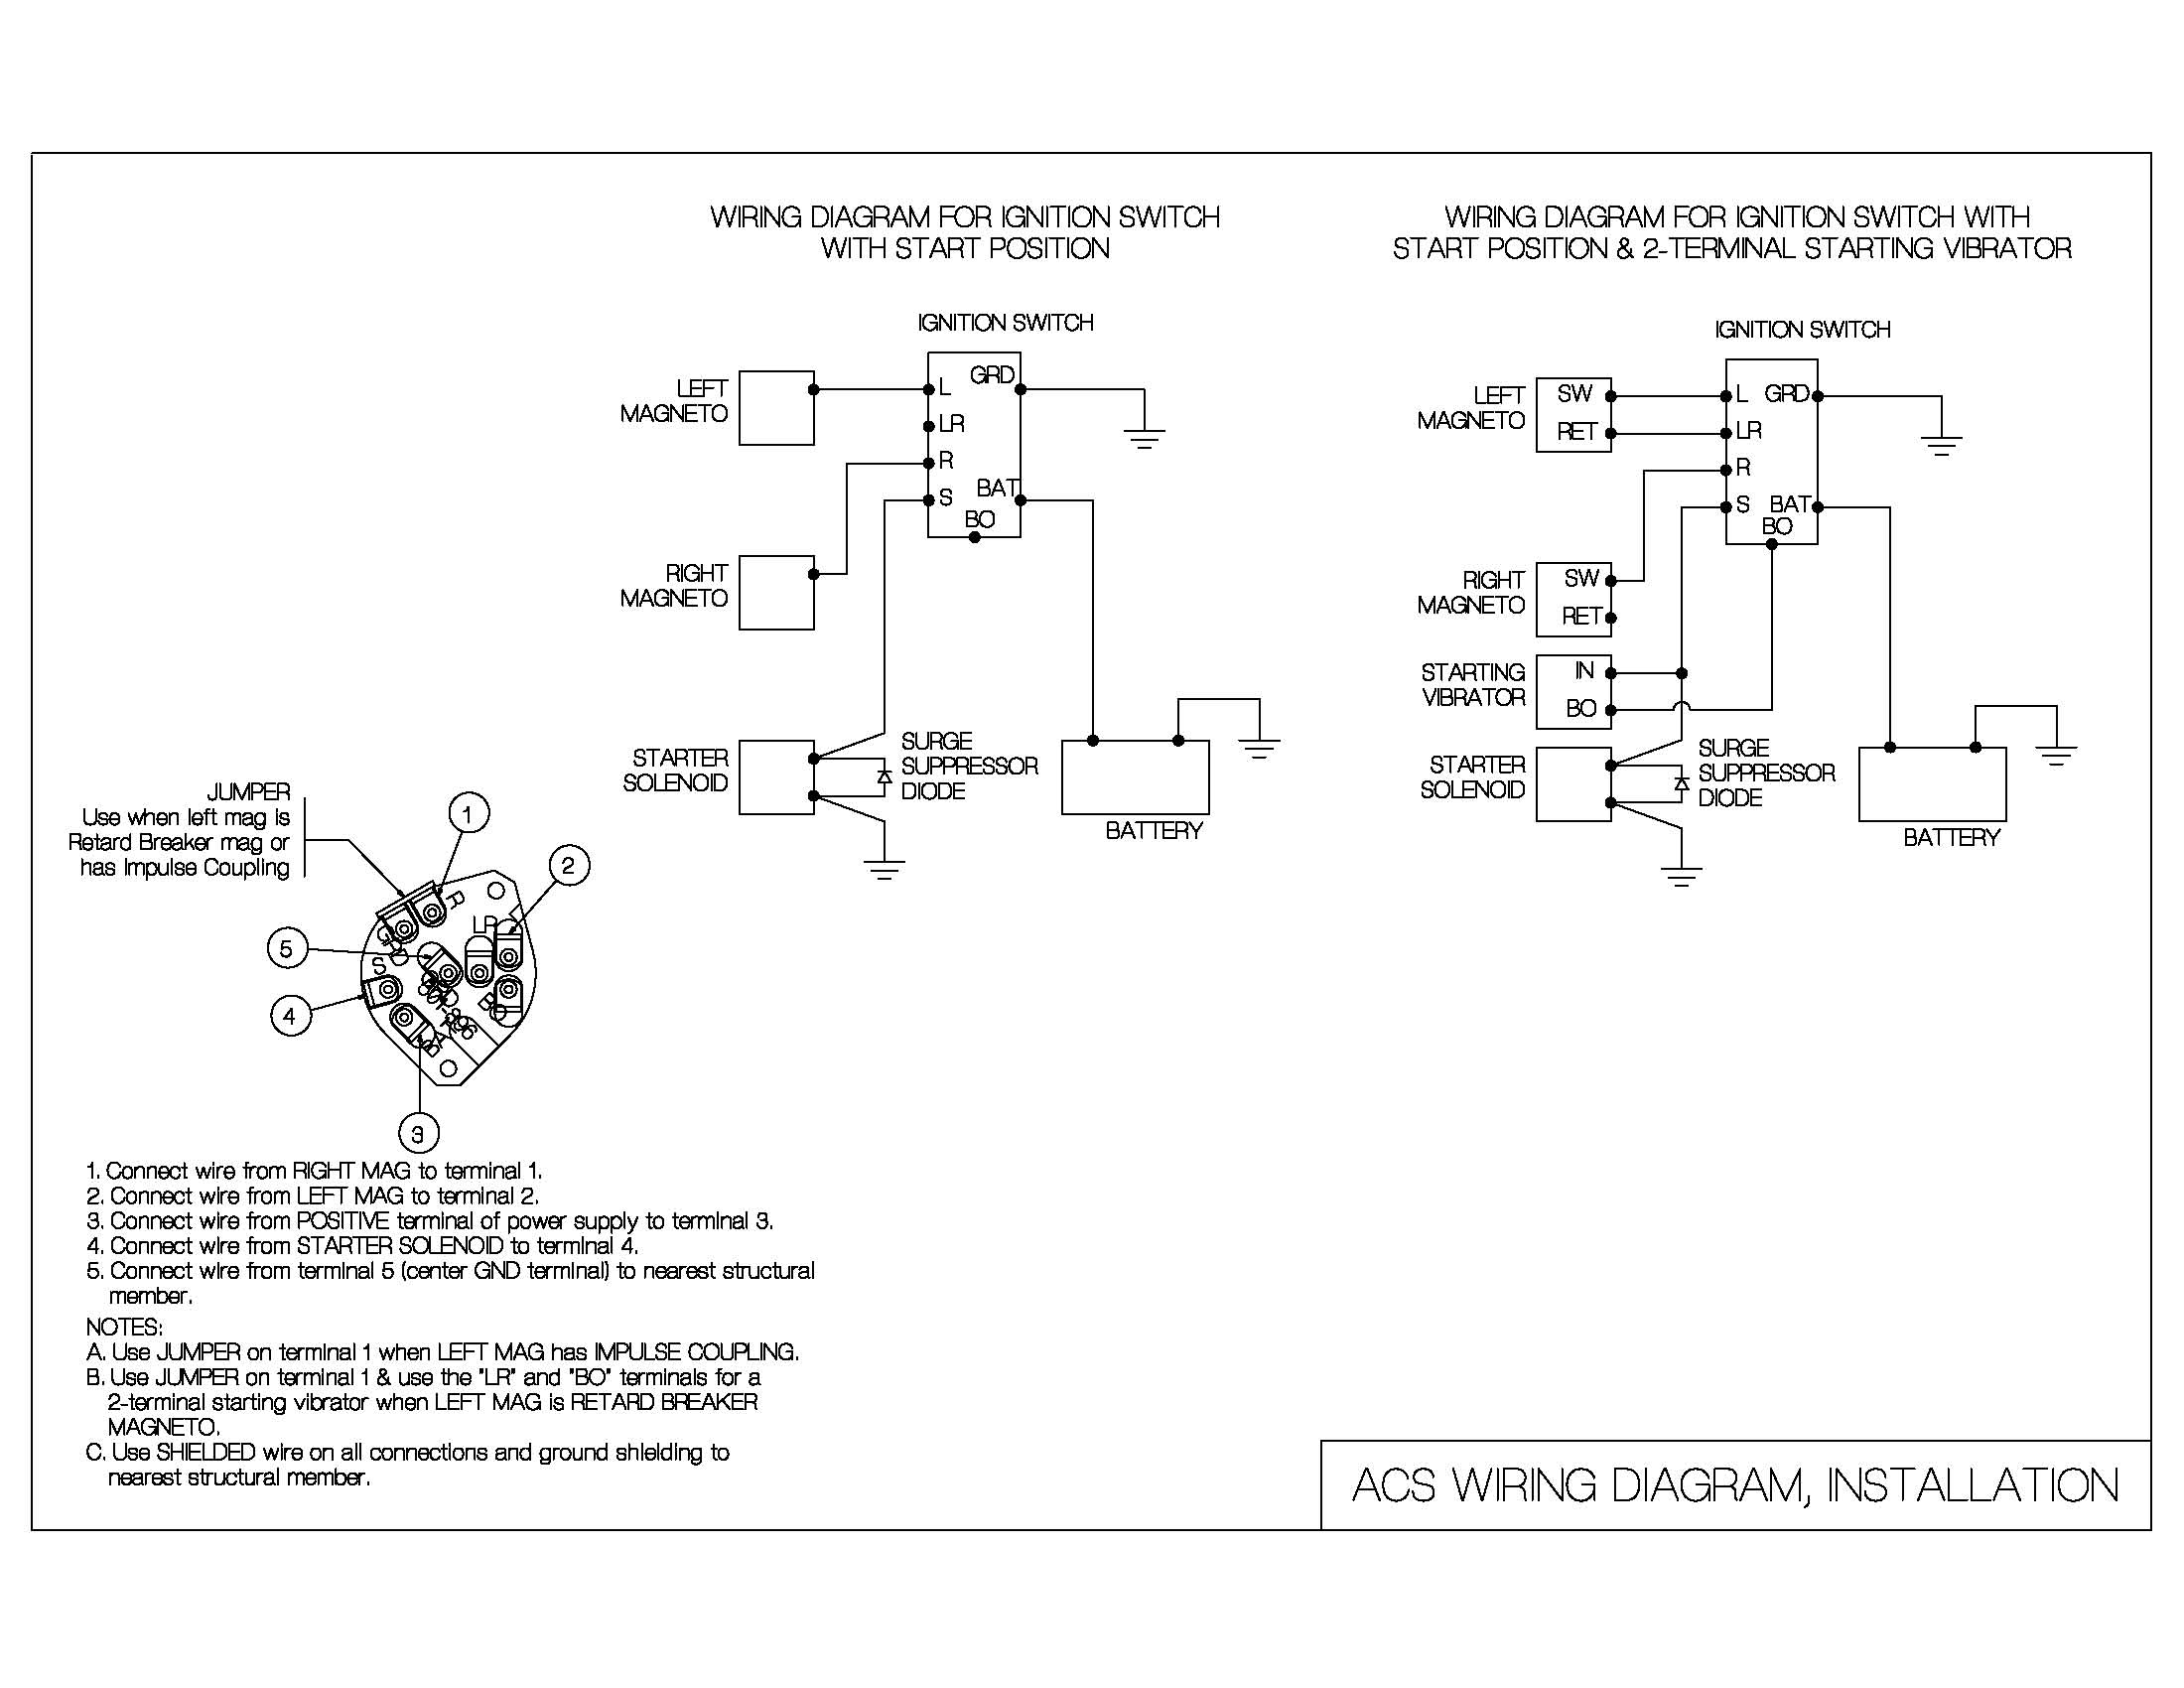 Wiring Diagram ignition switch wiring diagram acs products company ignition switch wiring diagram at highcare.asia